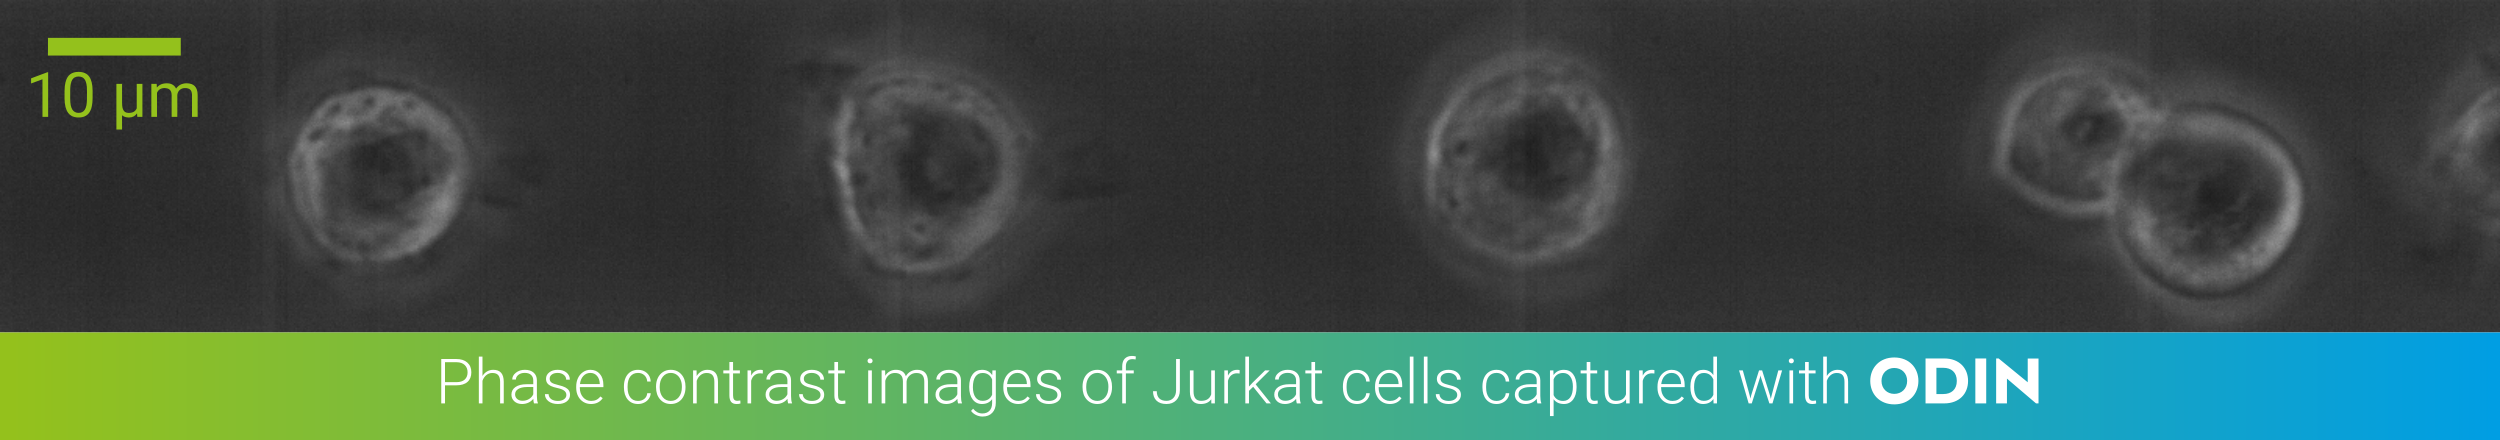 Jurkat cells in phase contrast imaged with ODIN at 2800 fps and 5µs shutter time